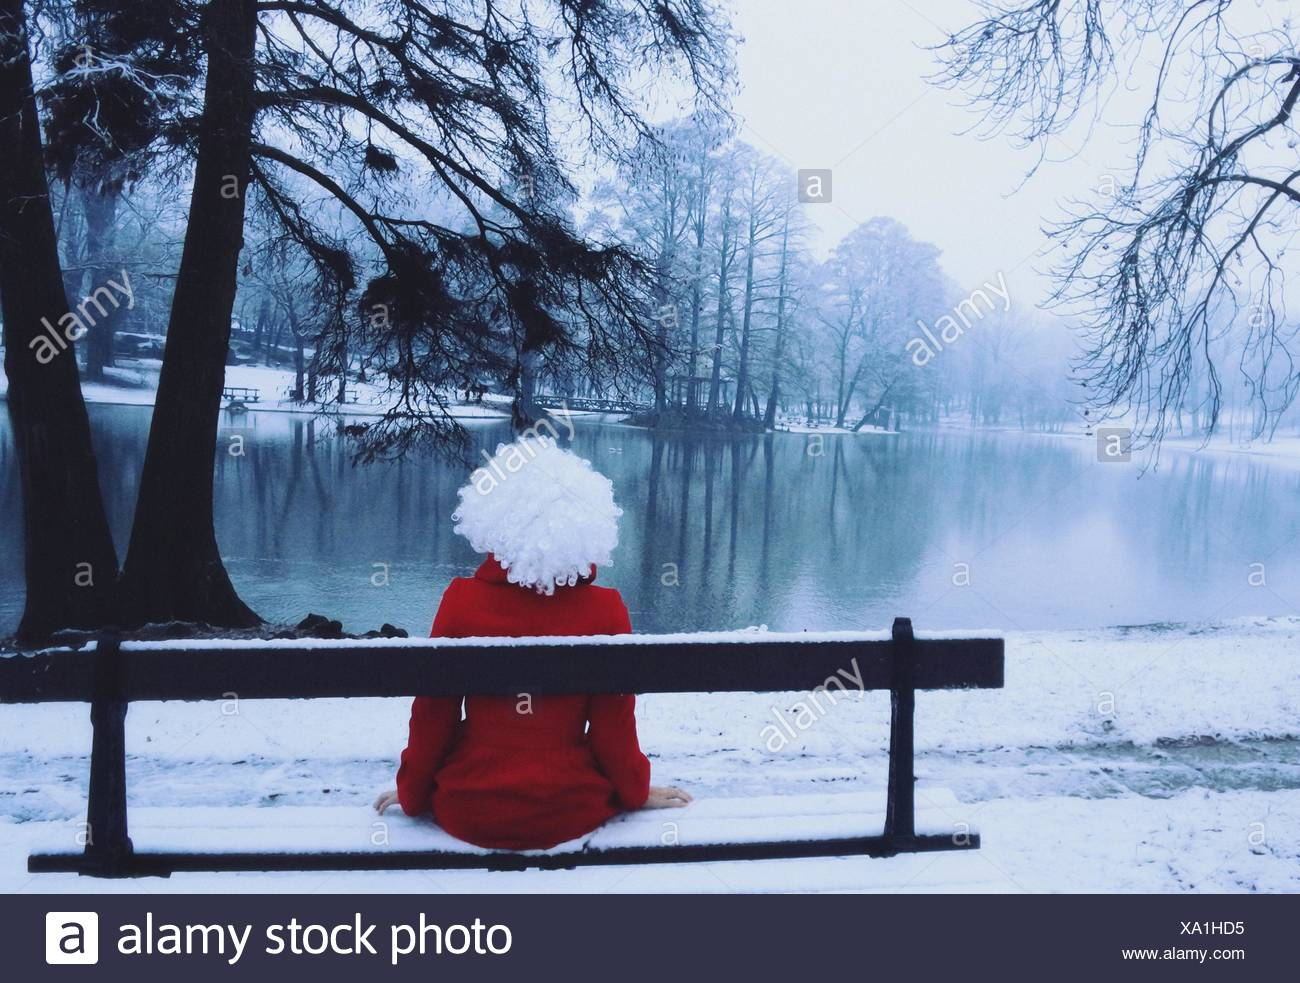 Rear view of young woman wearing red coat in snow covered park - Stock Image